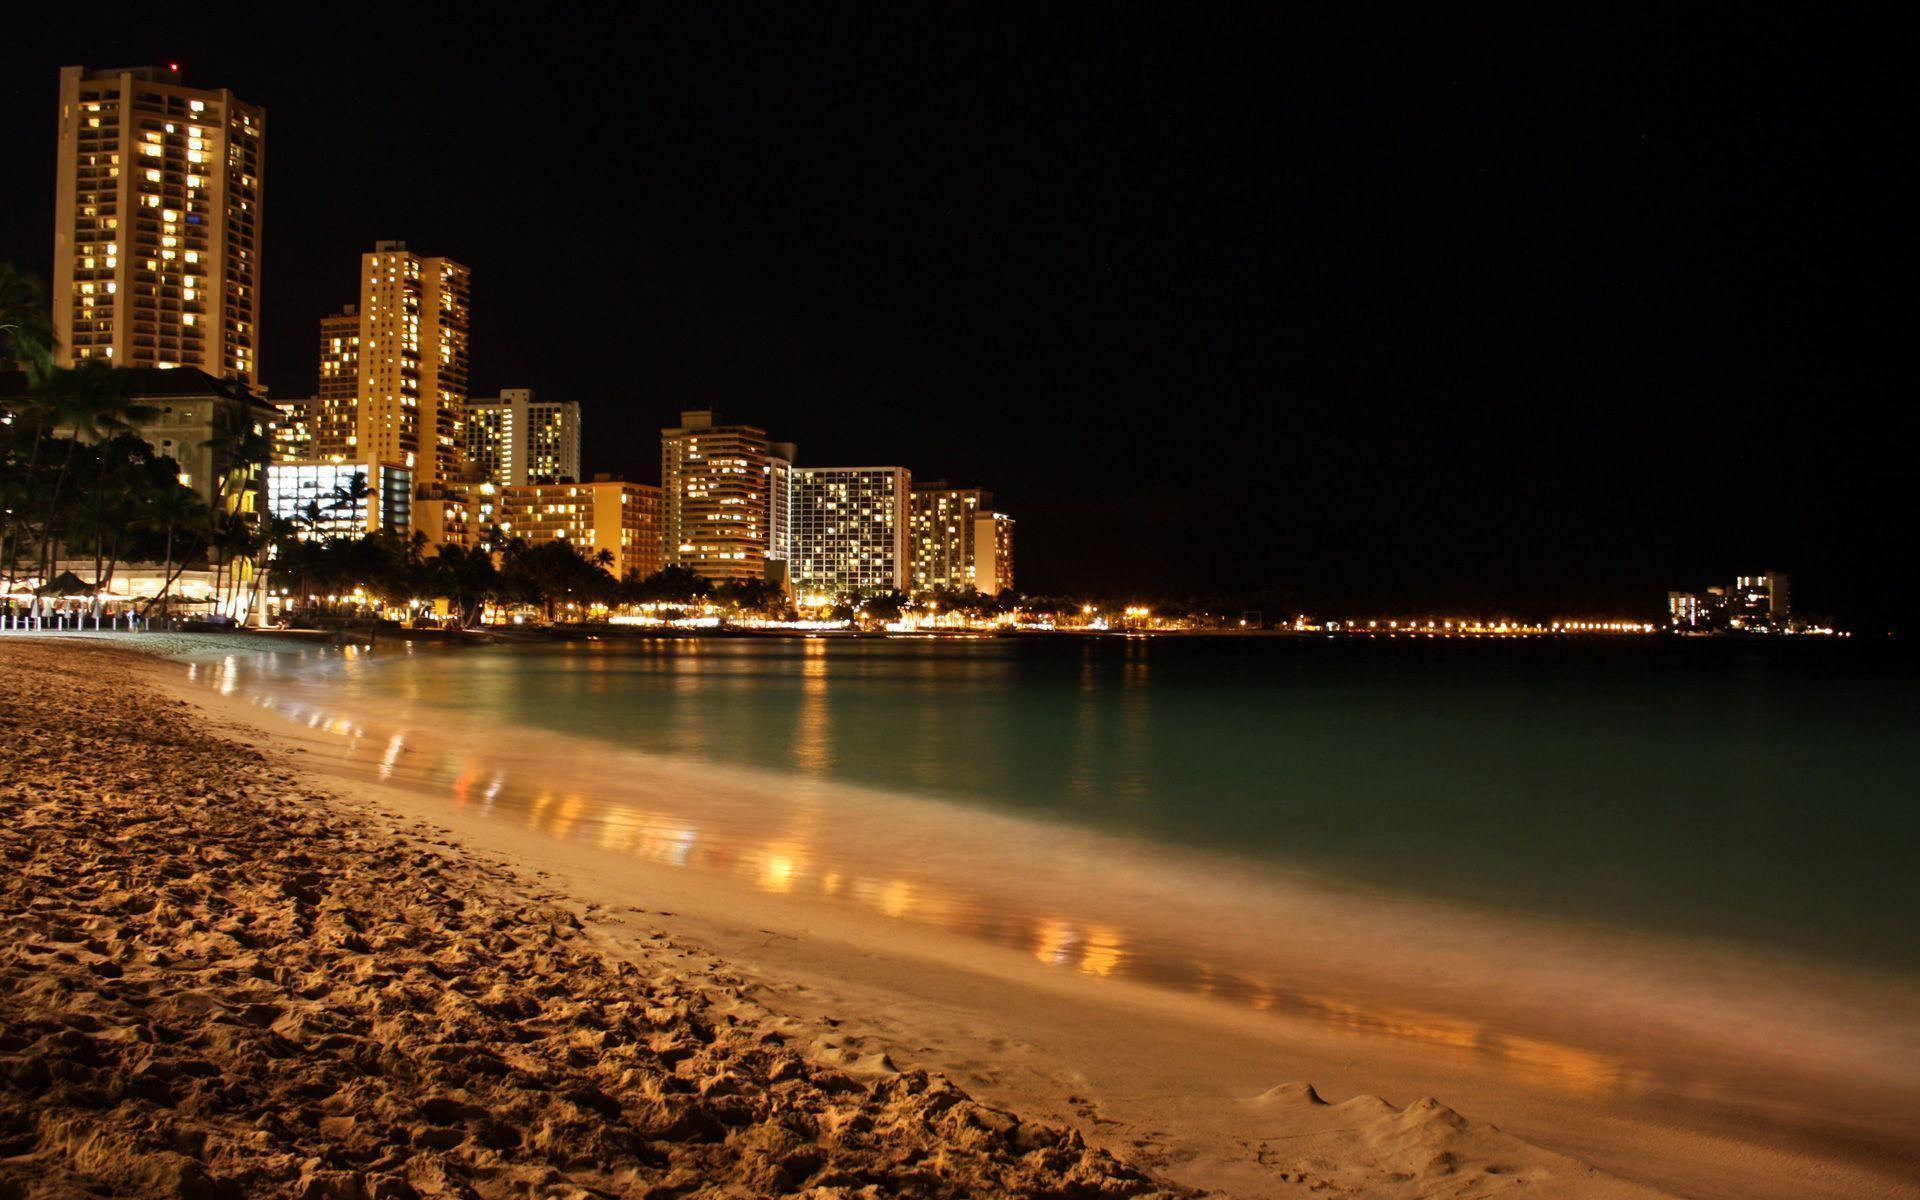 Beach At Night Wallpapers 1920x1200